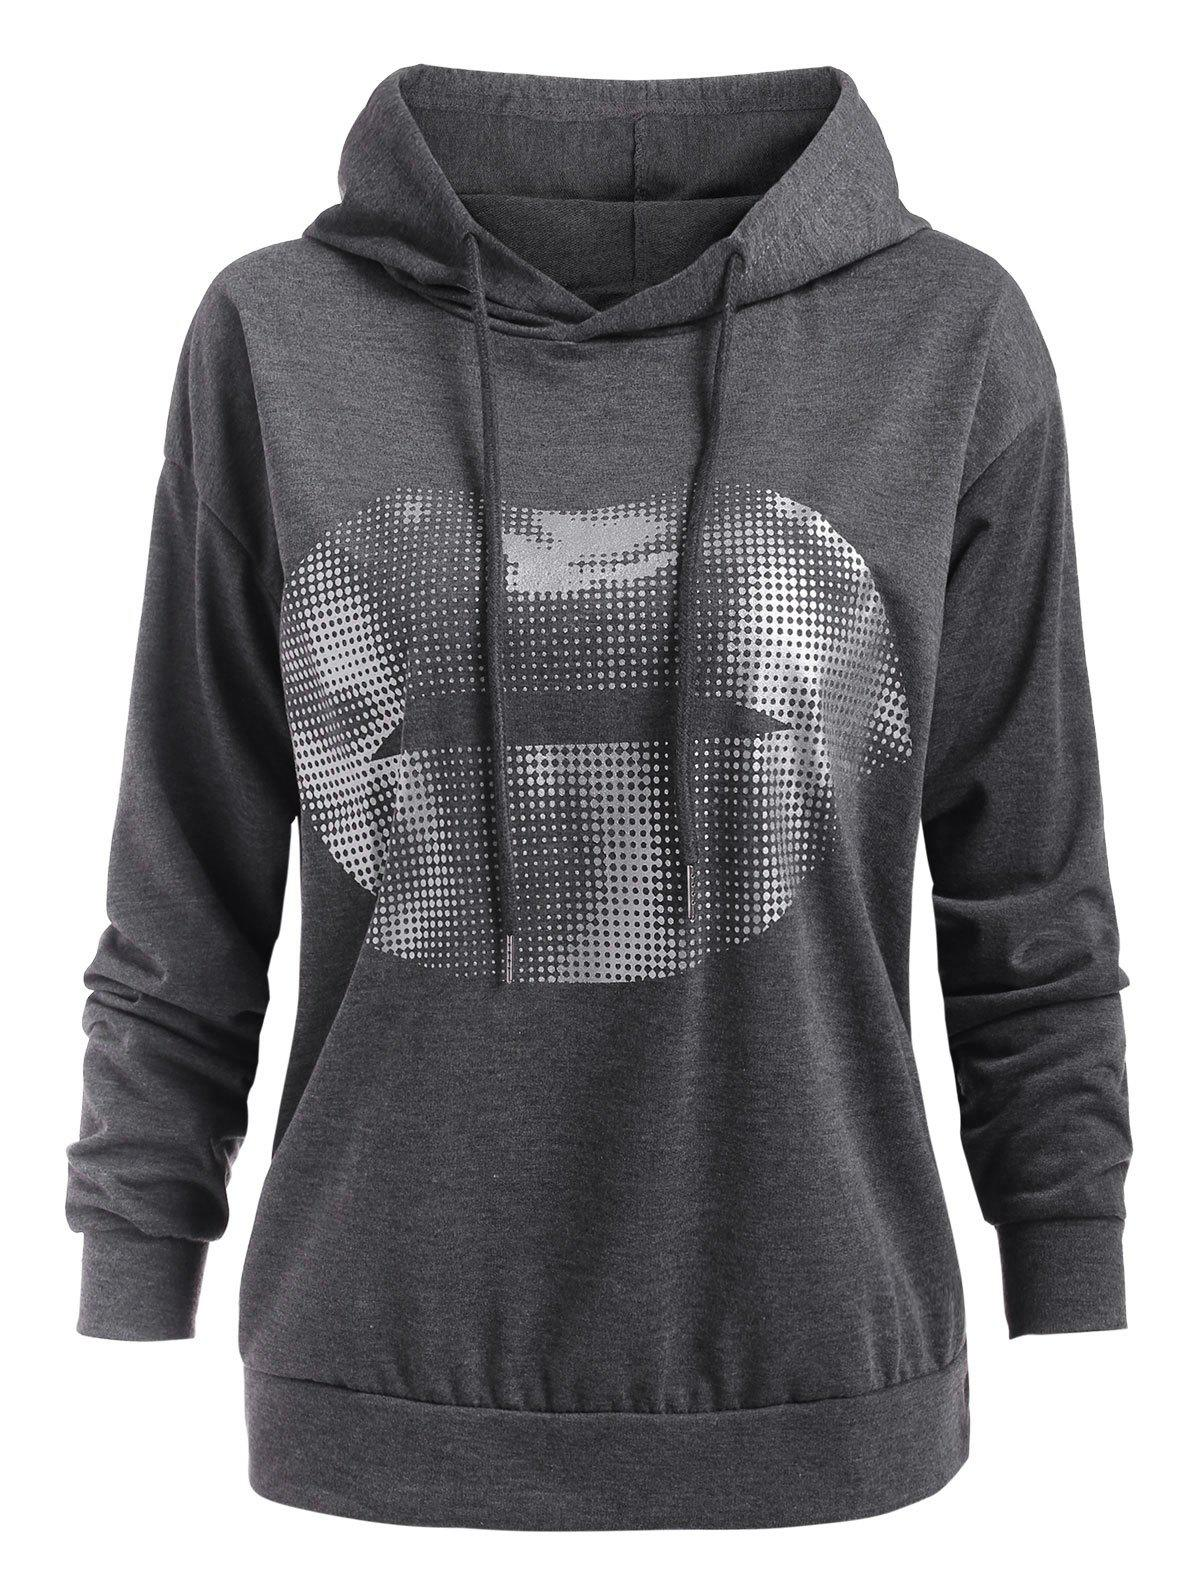 Foil Dot Lip Graphic Drawstring Hoodie - GRAY 2XL